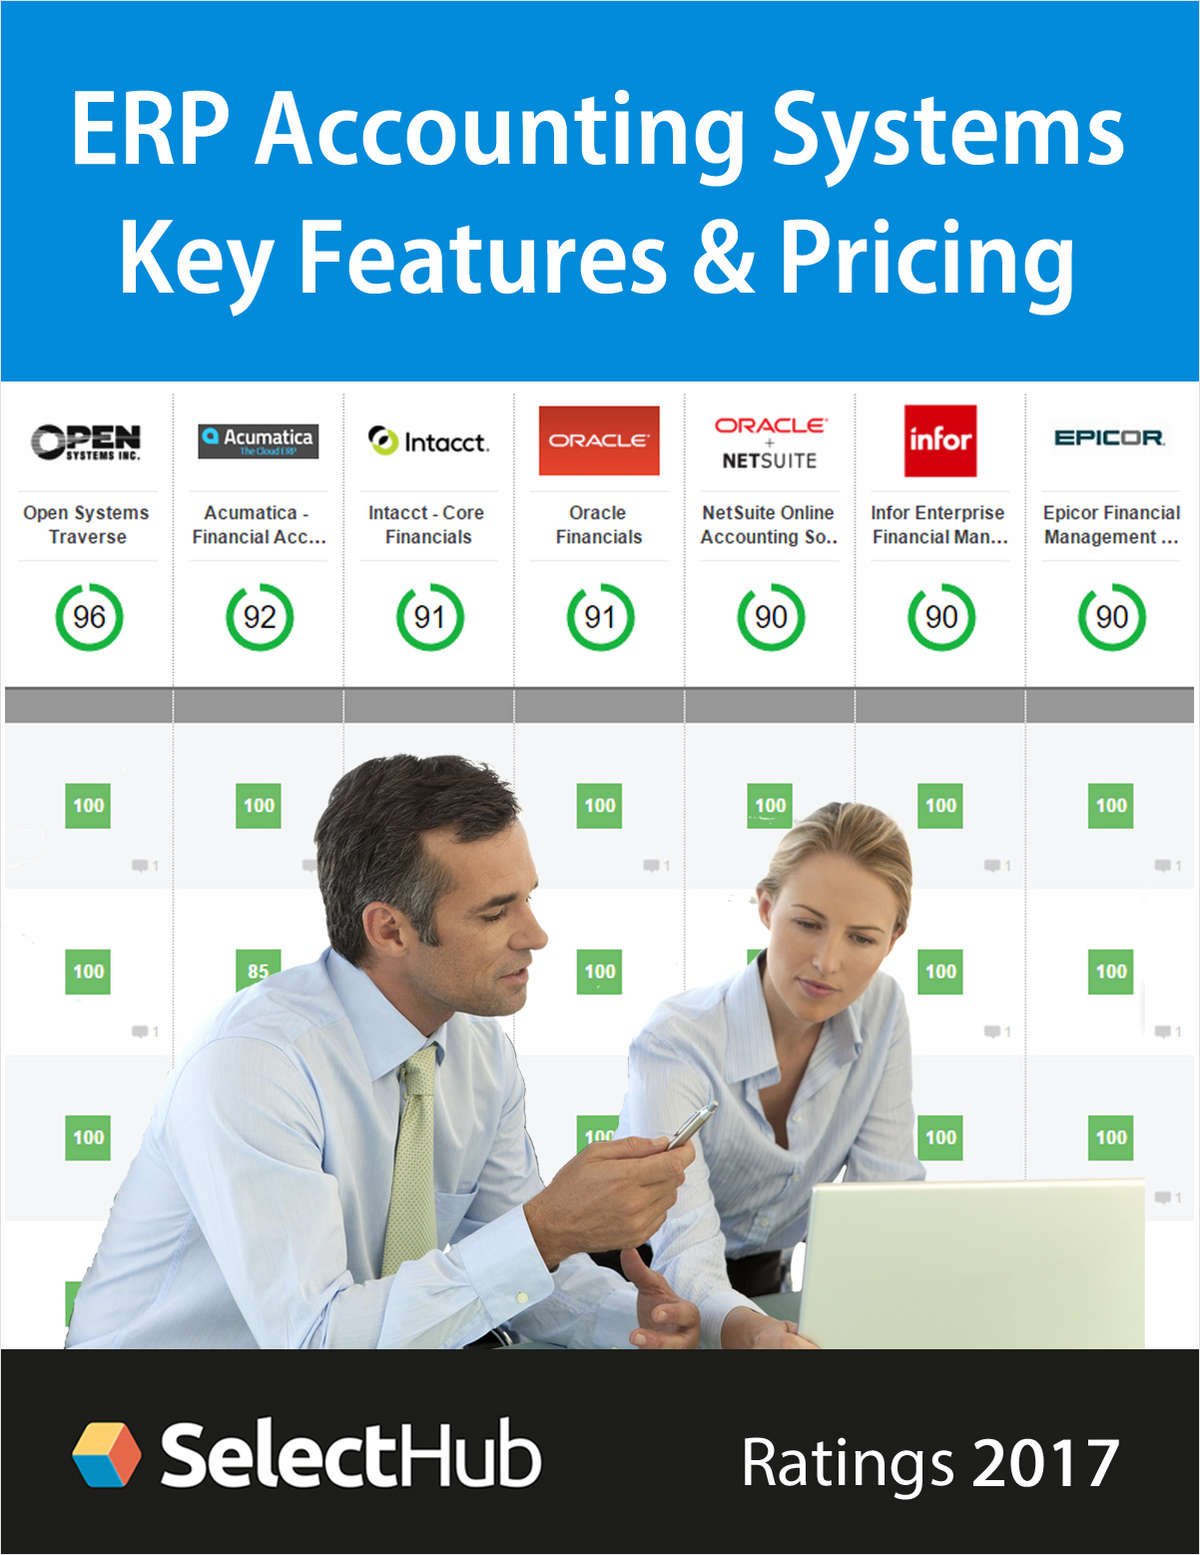 Top ERP Accounting Systems 2017--Get Key Features, Recommendations & Pricing